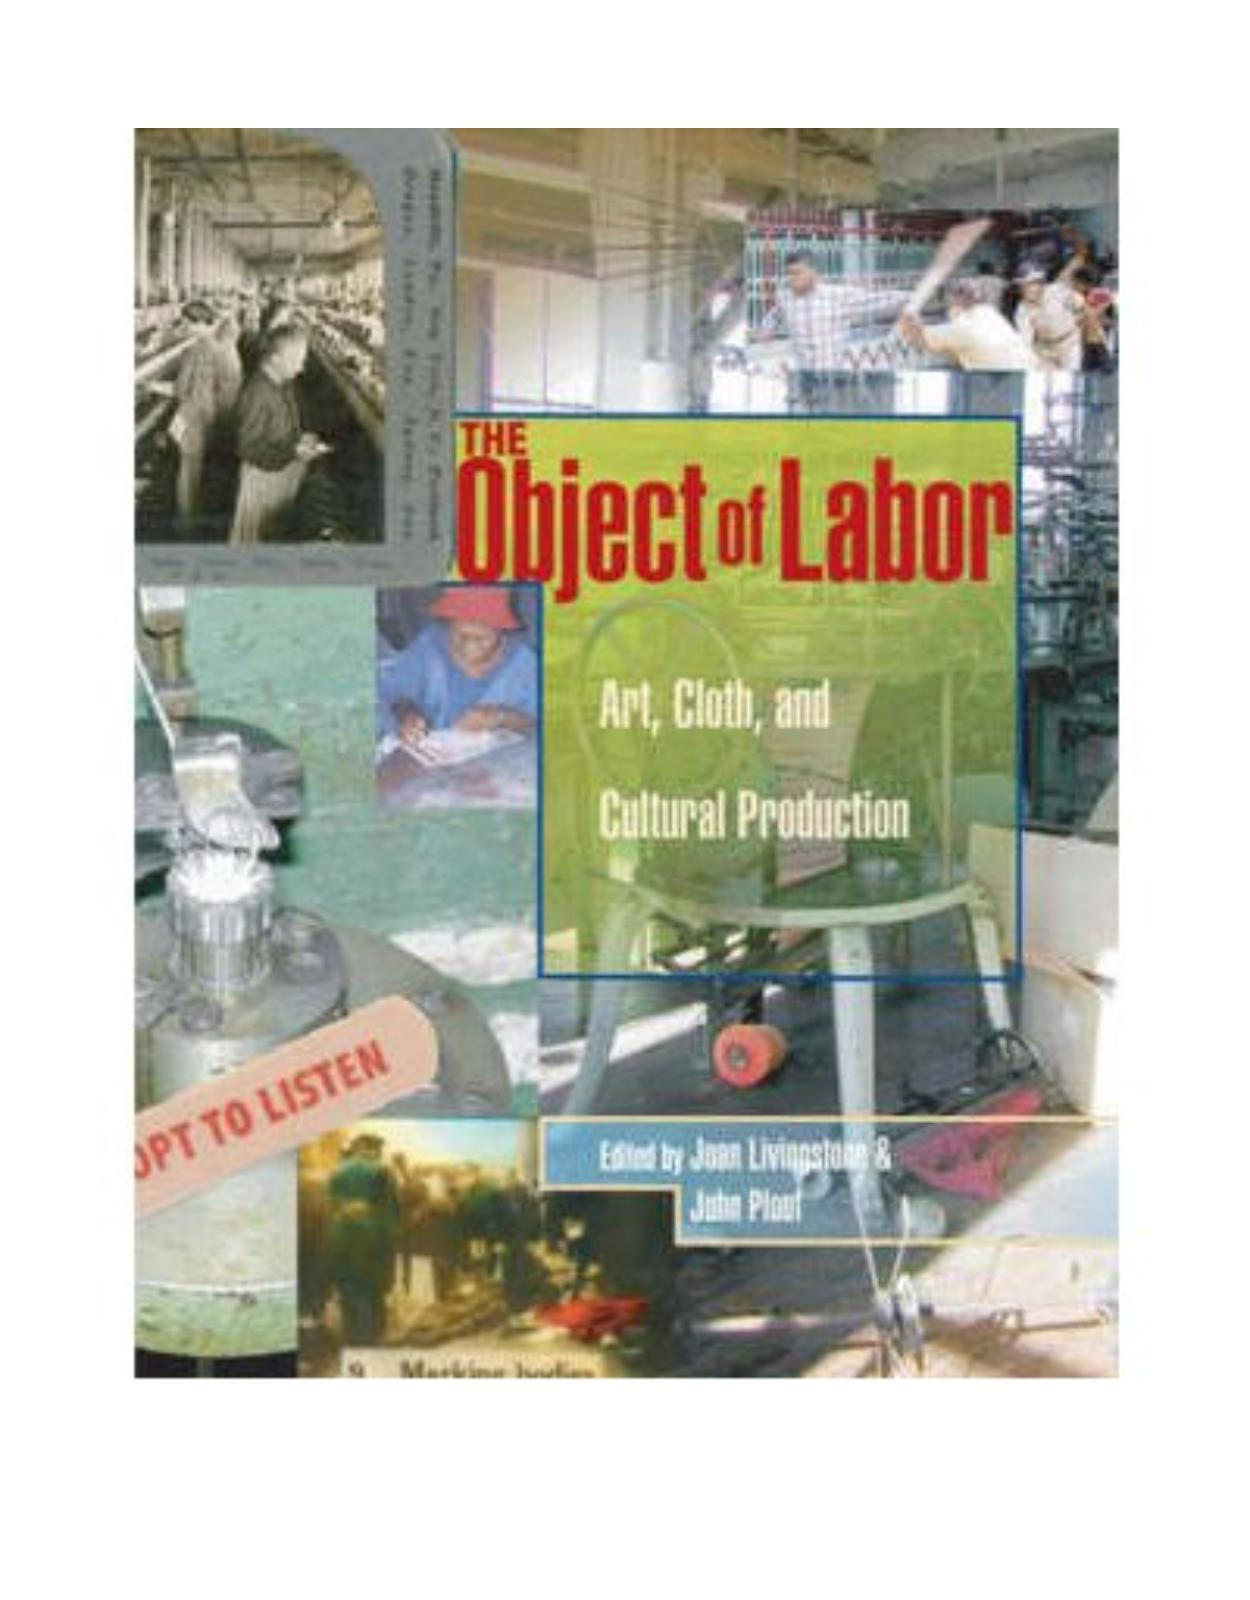 The Object of Labor: Art, Cloth and Cultural Production